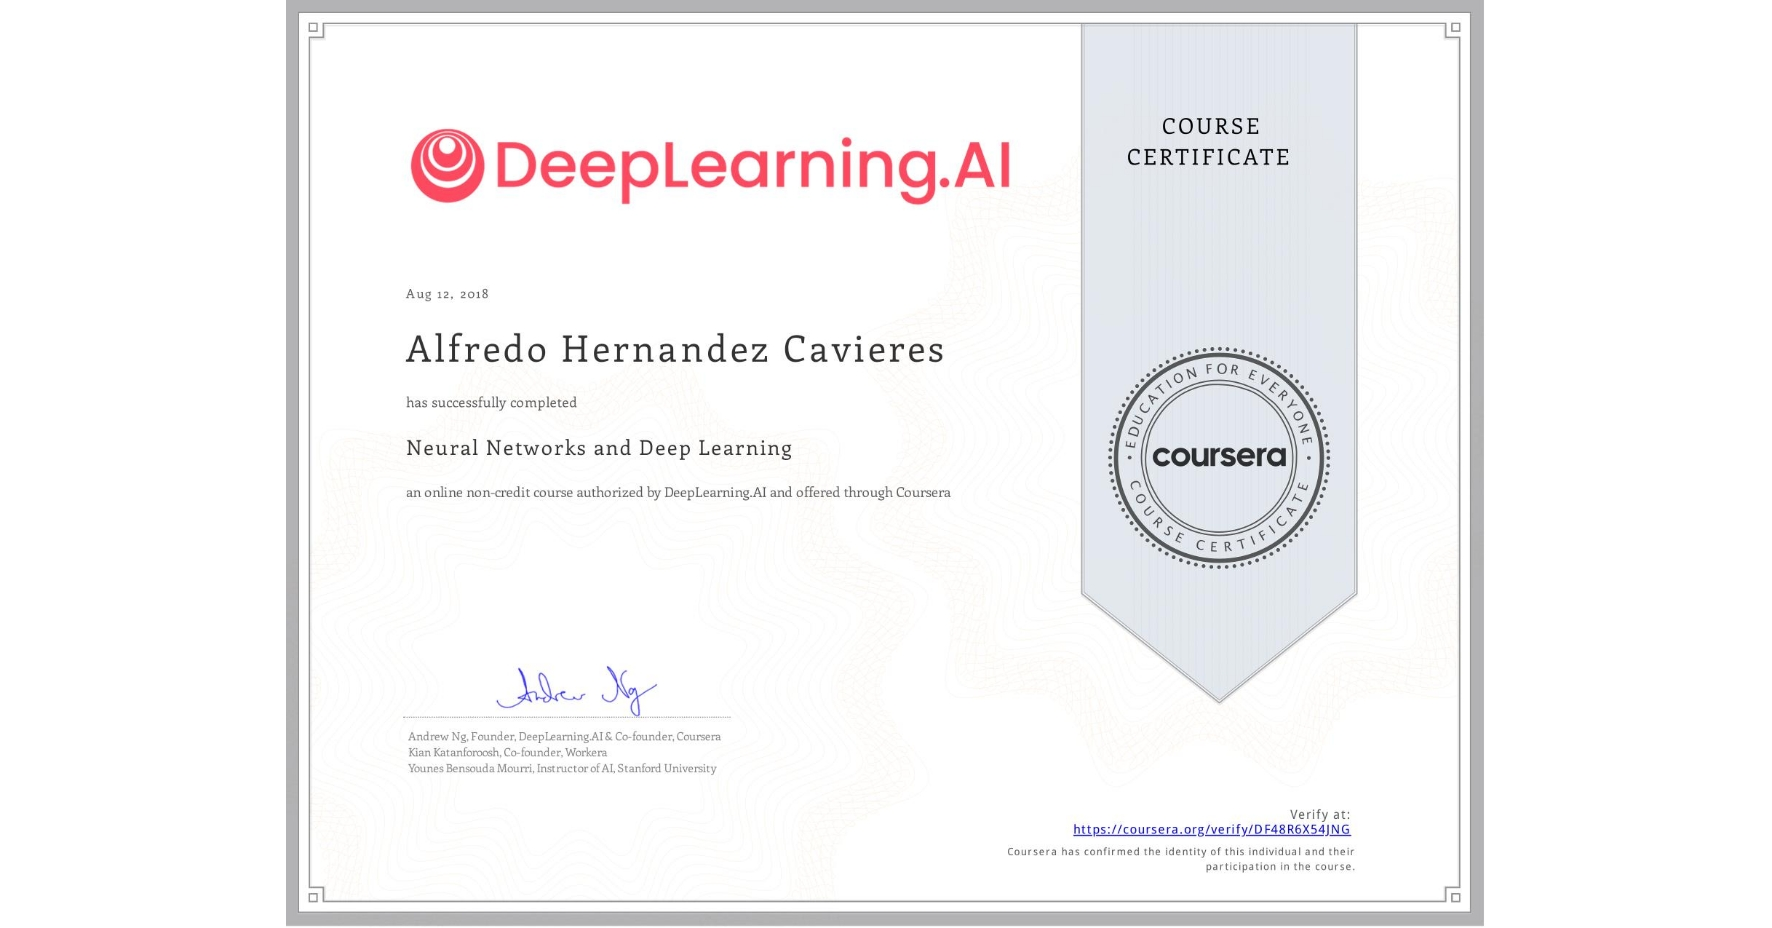 View certificate for Alfredo Hernandez Cavieres, Neural Networks and Deep Learning, an online non-credit course authorized by DeepLearning.AI and offered through Coursera